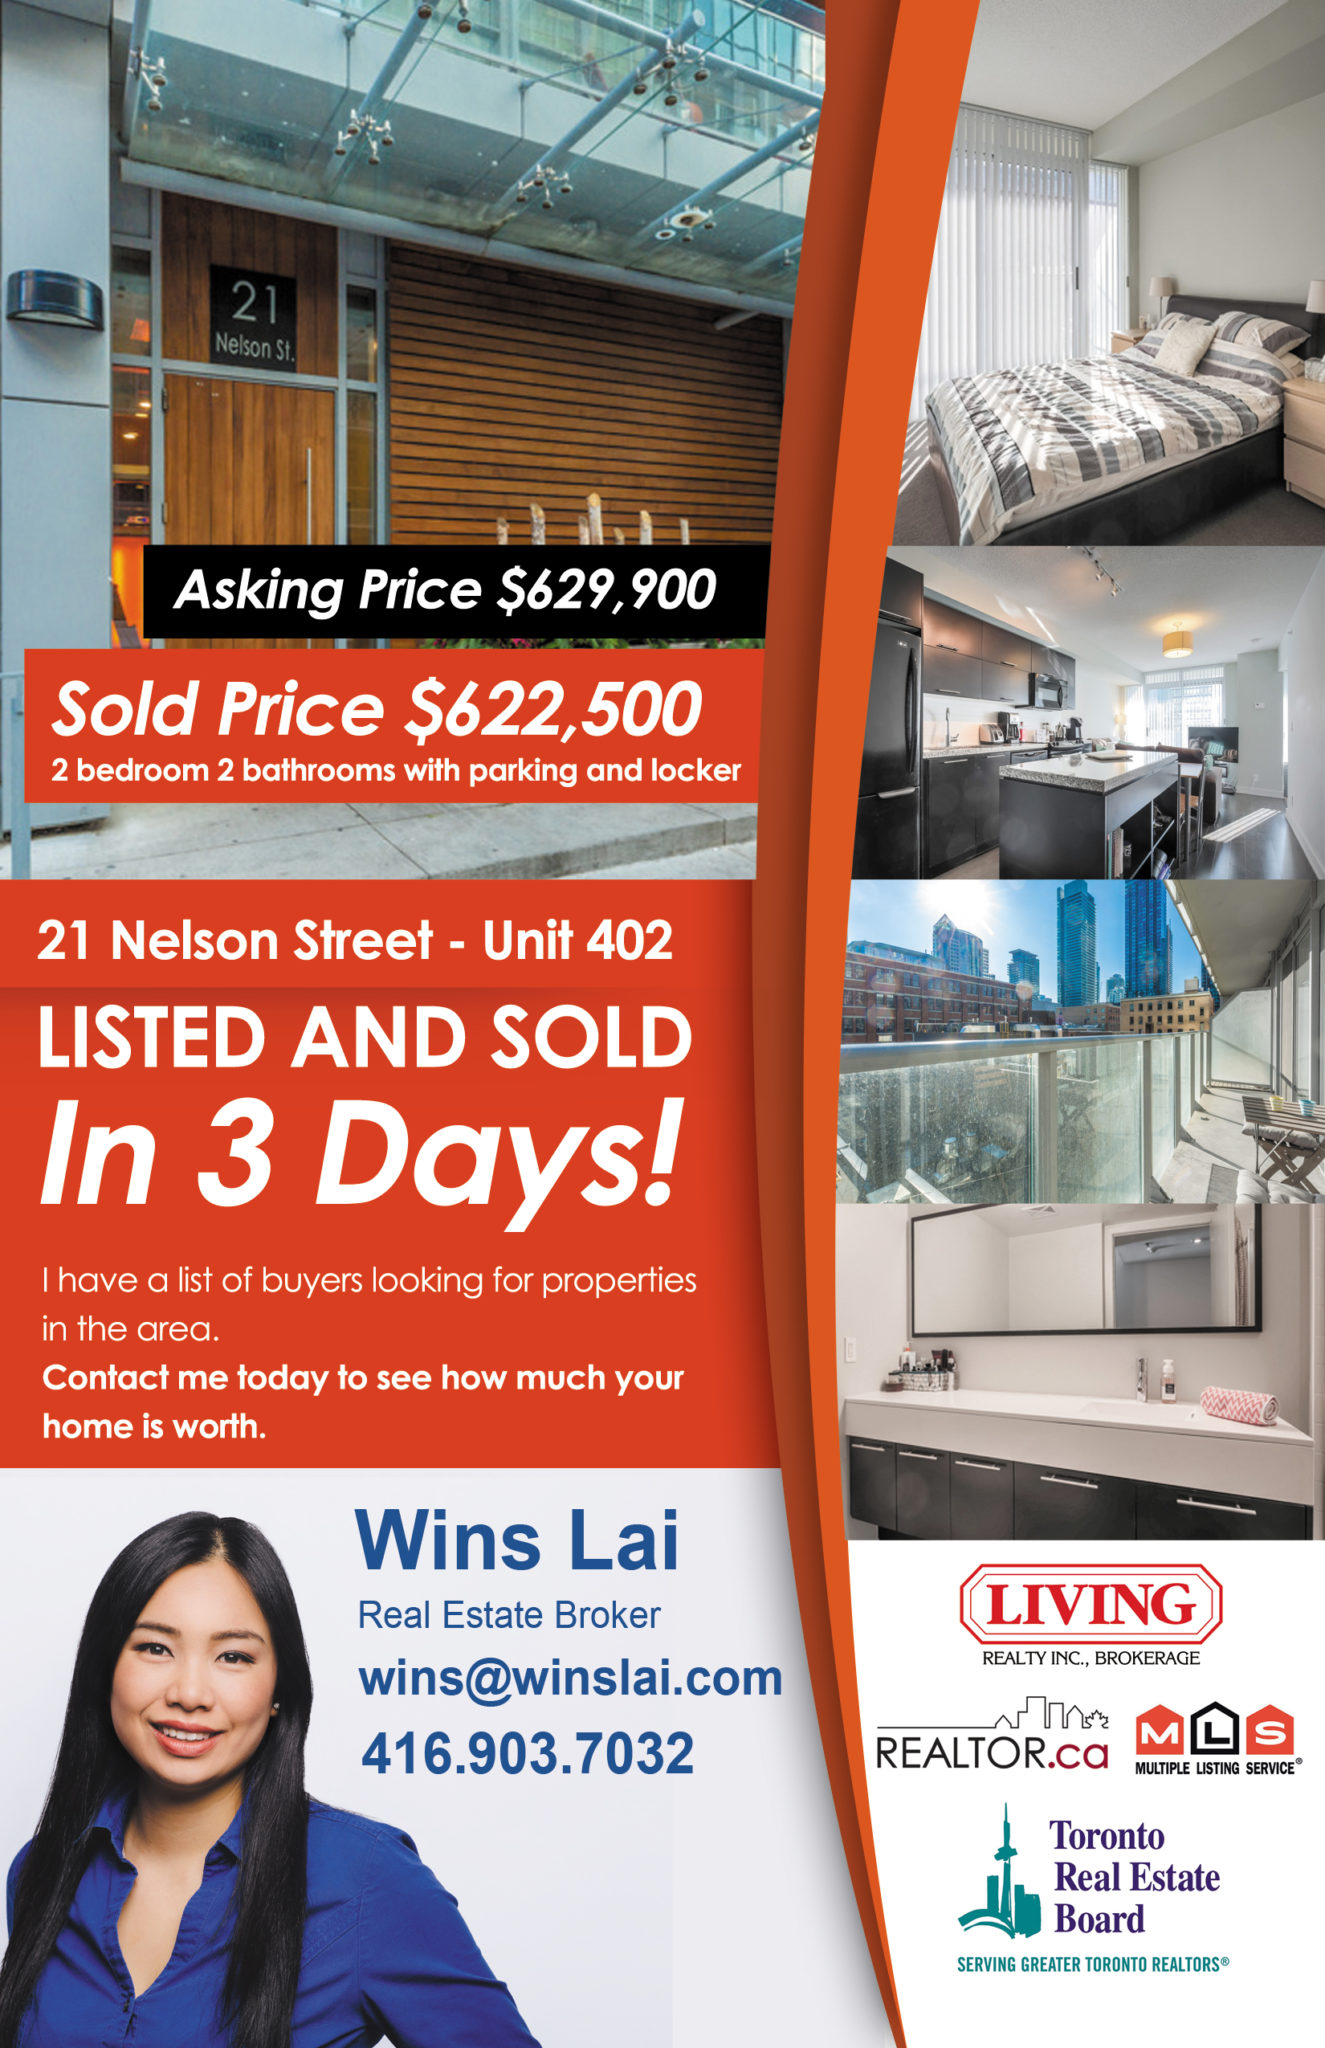 Flyer showing 21 Nelson Street condo listing and sale in 3 days